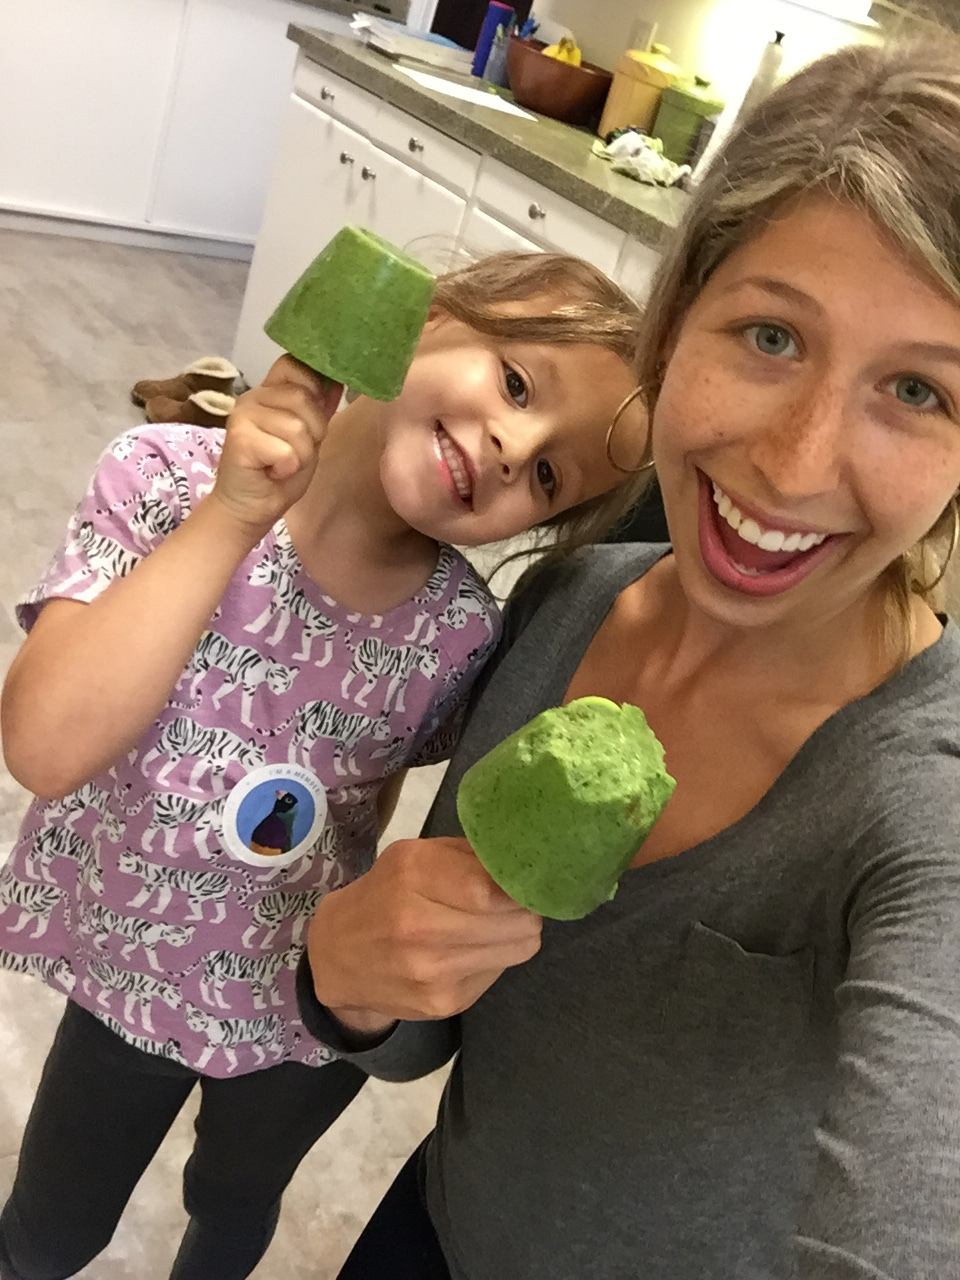 Enjoying a Smoothie Pop! Filled with booster foods for growing kids and healthy adults.